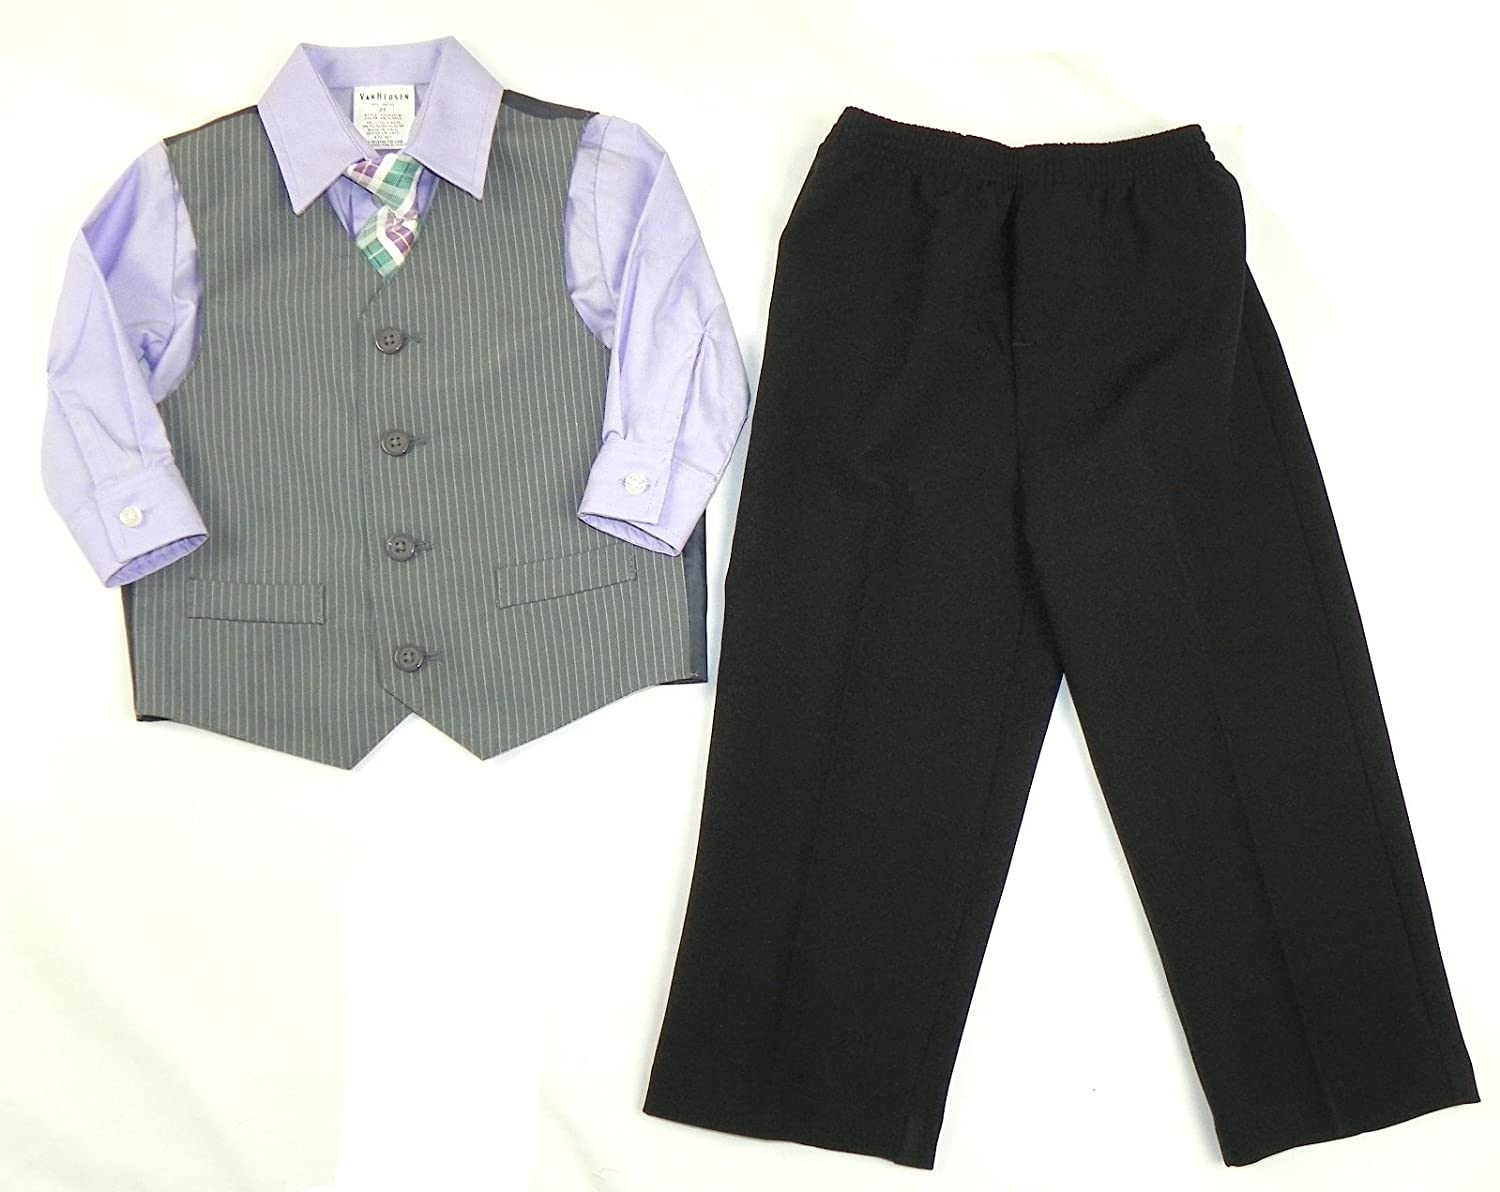 4-12 Van Heusen Sharkskin 4-Piece Vest Set